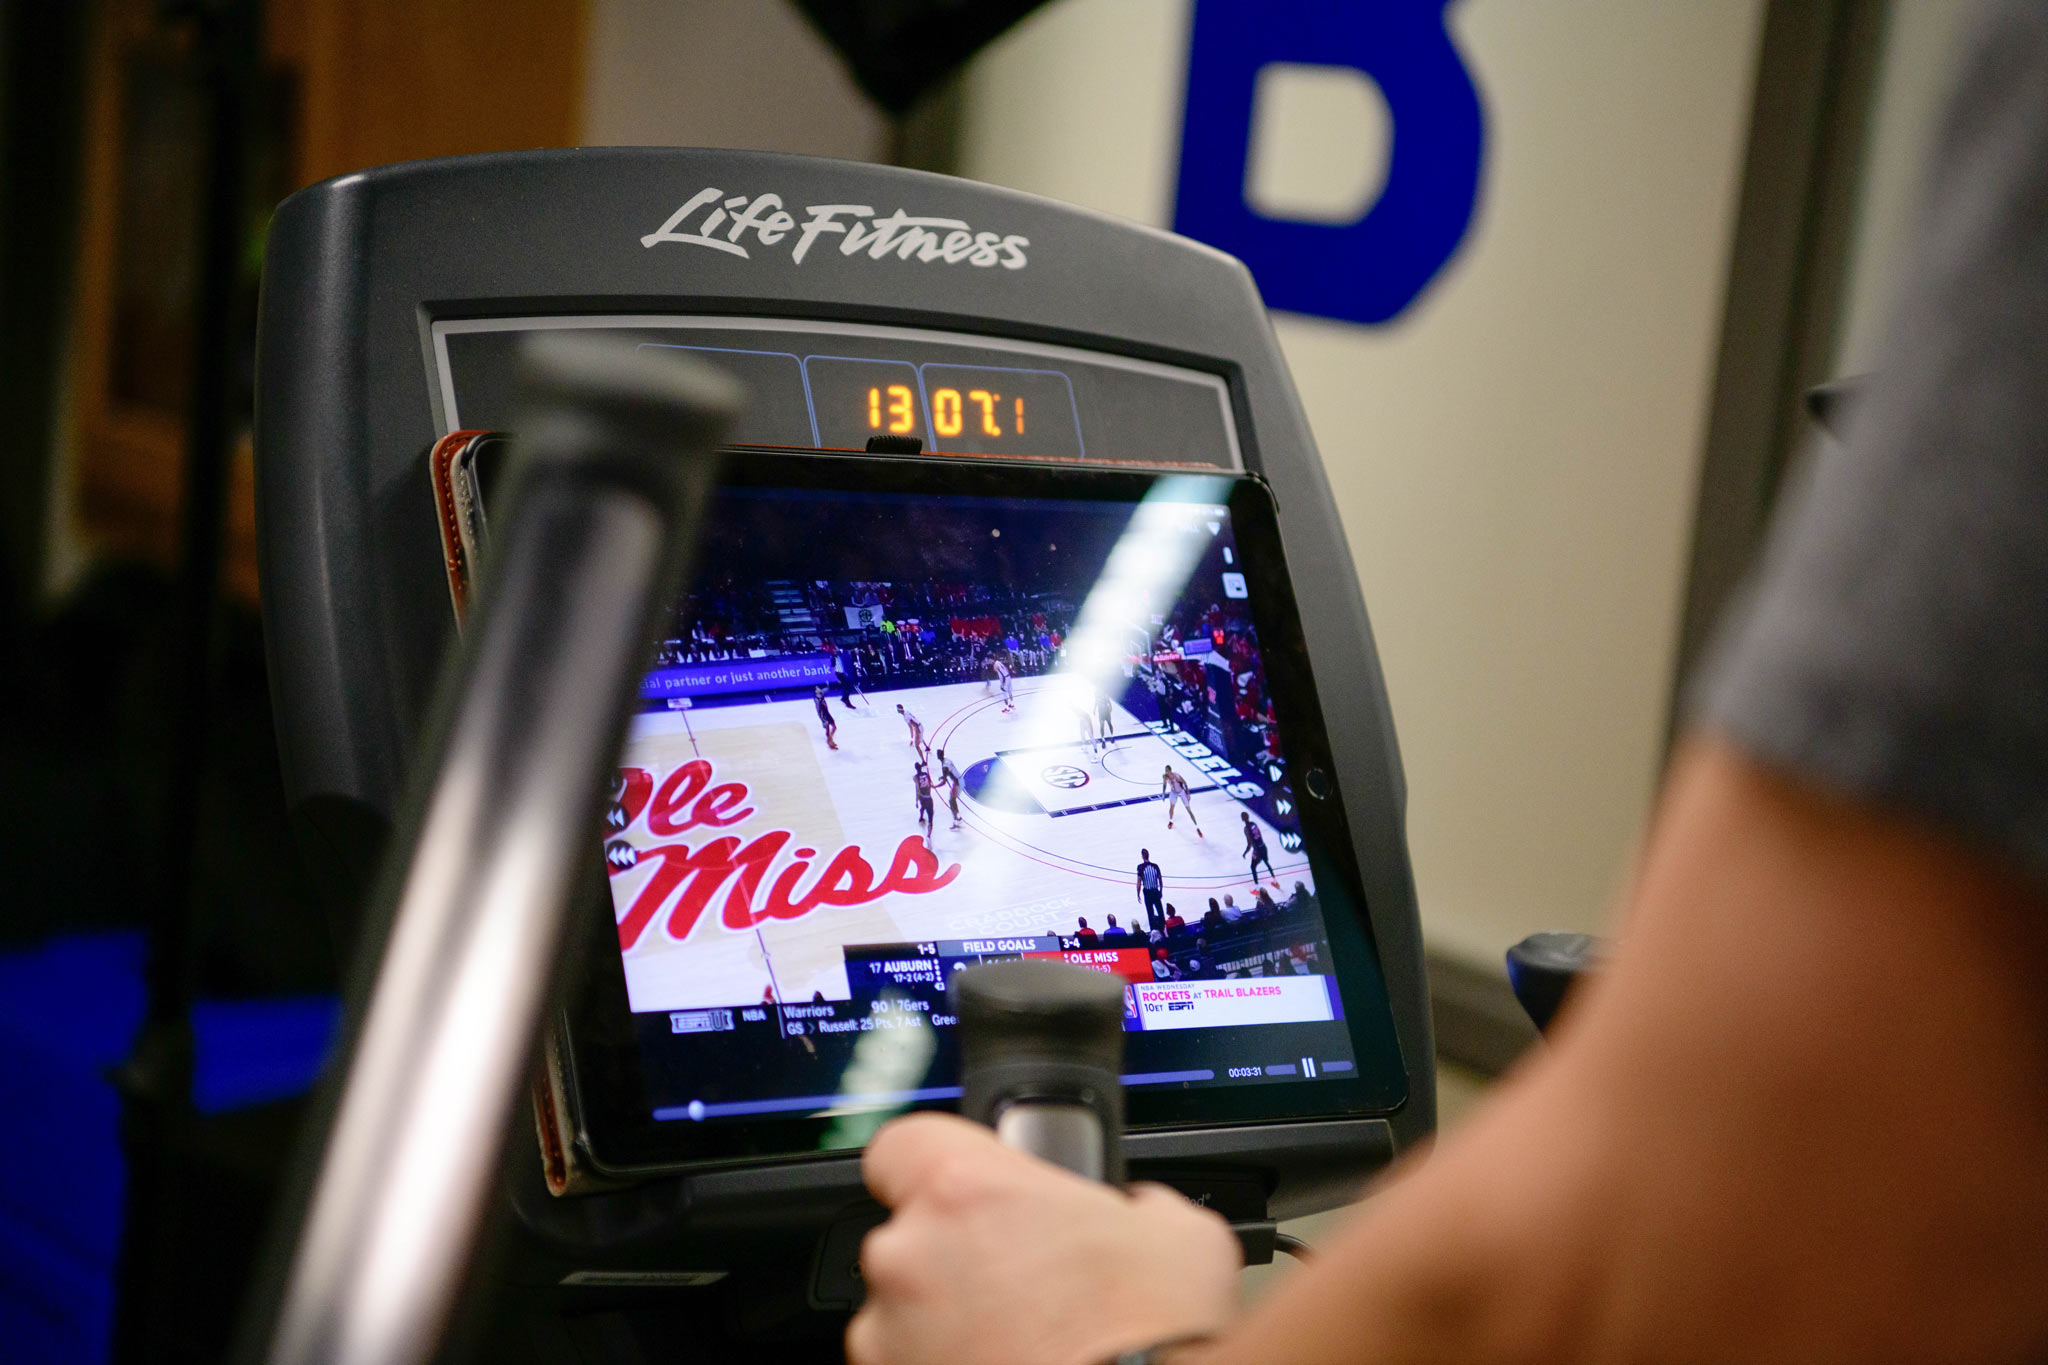 Coach Calipari rests his iPad against the elliptical's console to watch basketball games while he works out.